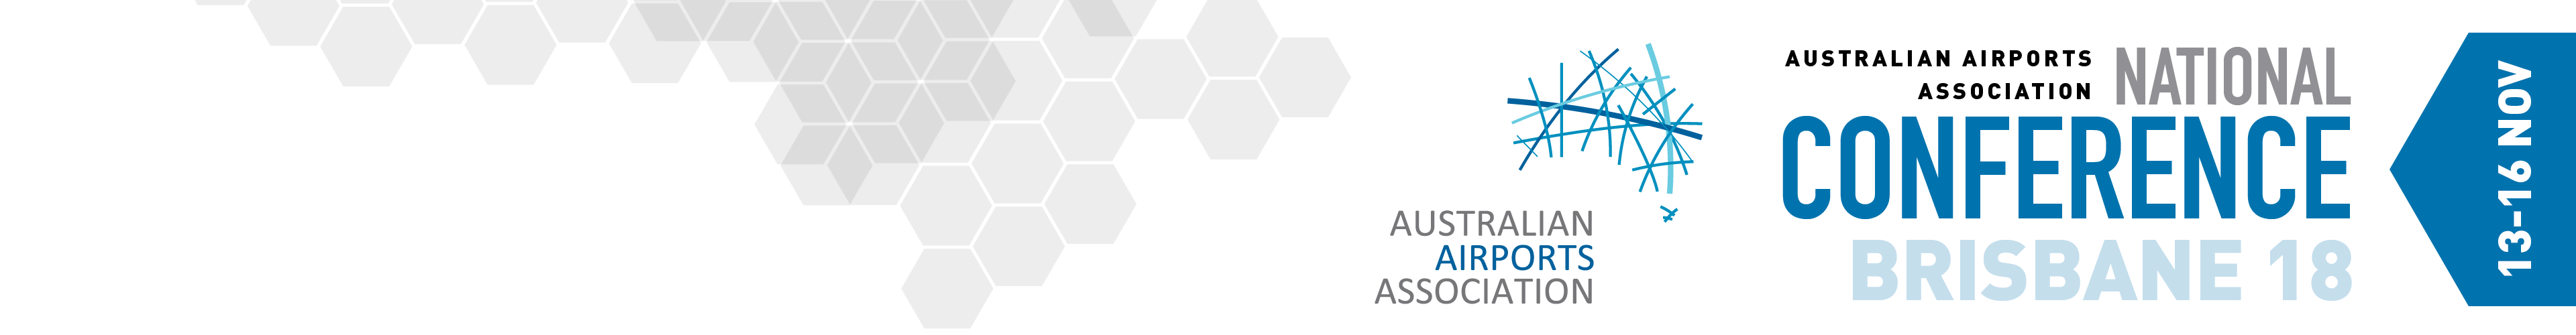 The Australian Airports Association National Conference Brisbane 2018